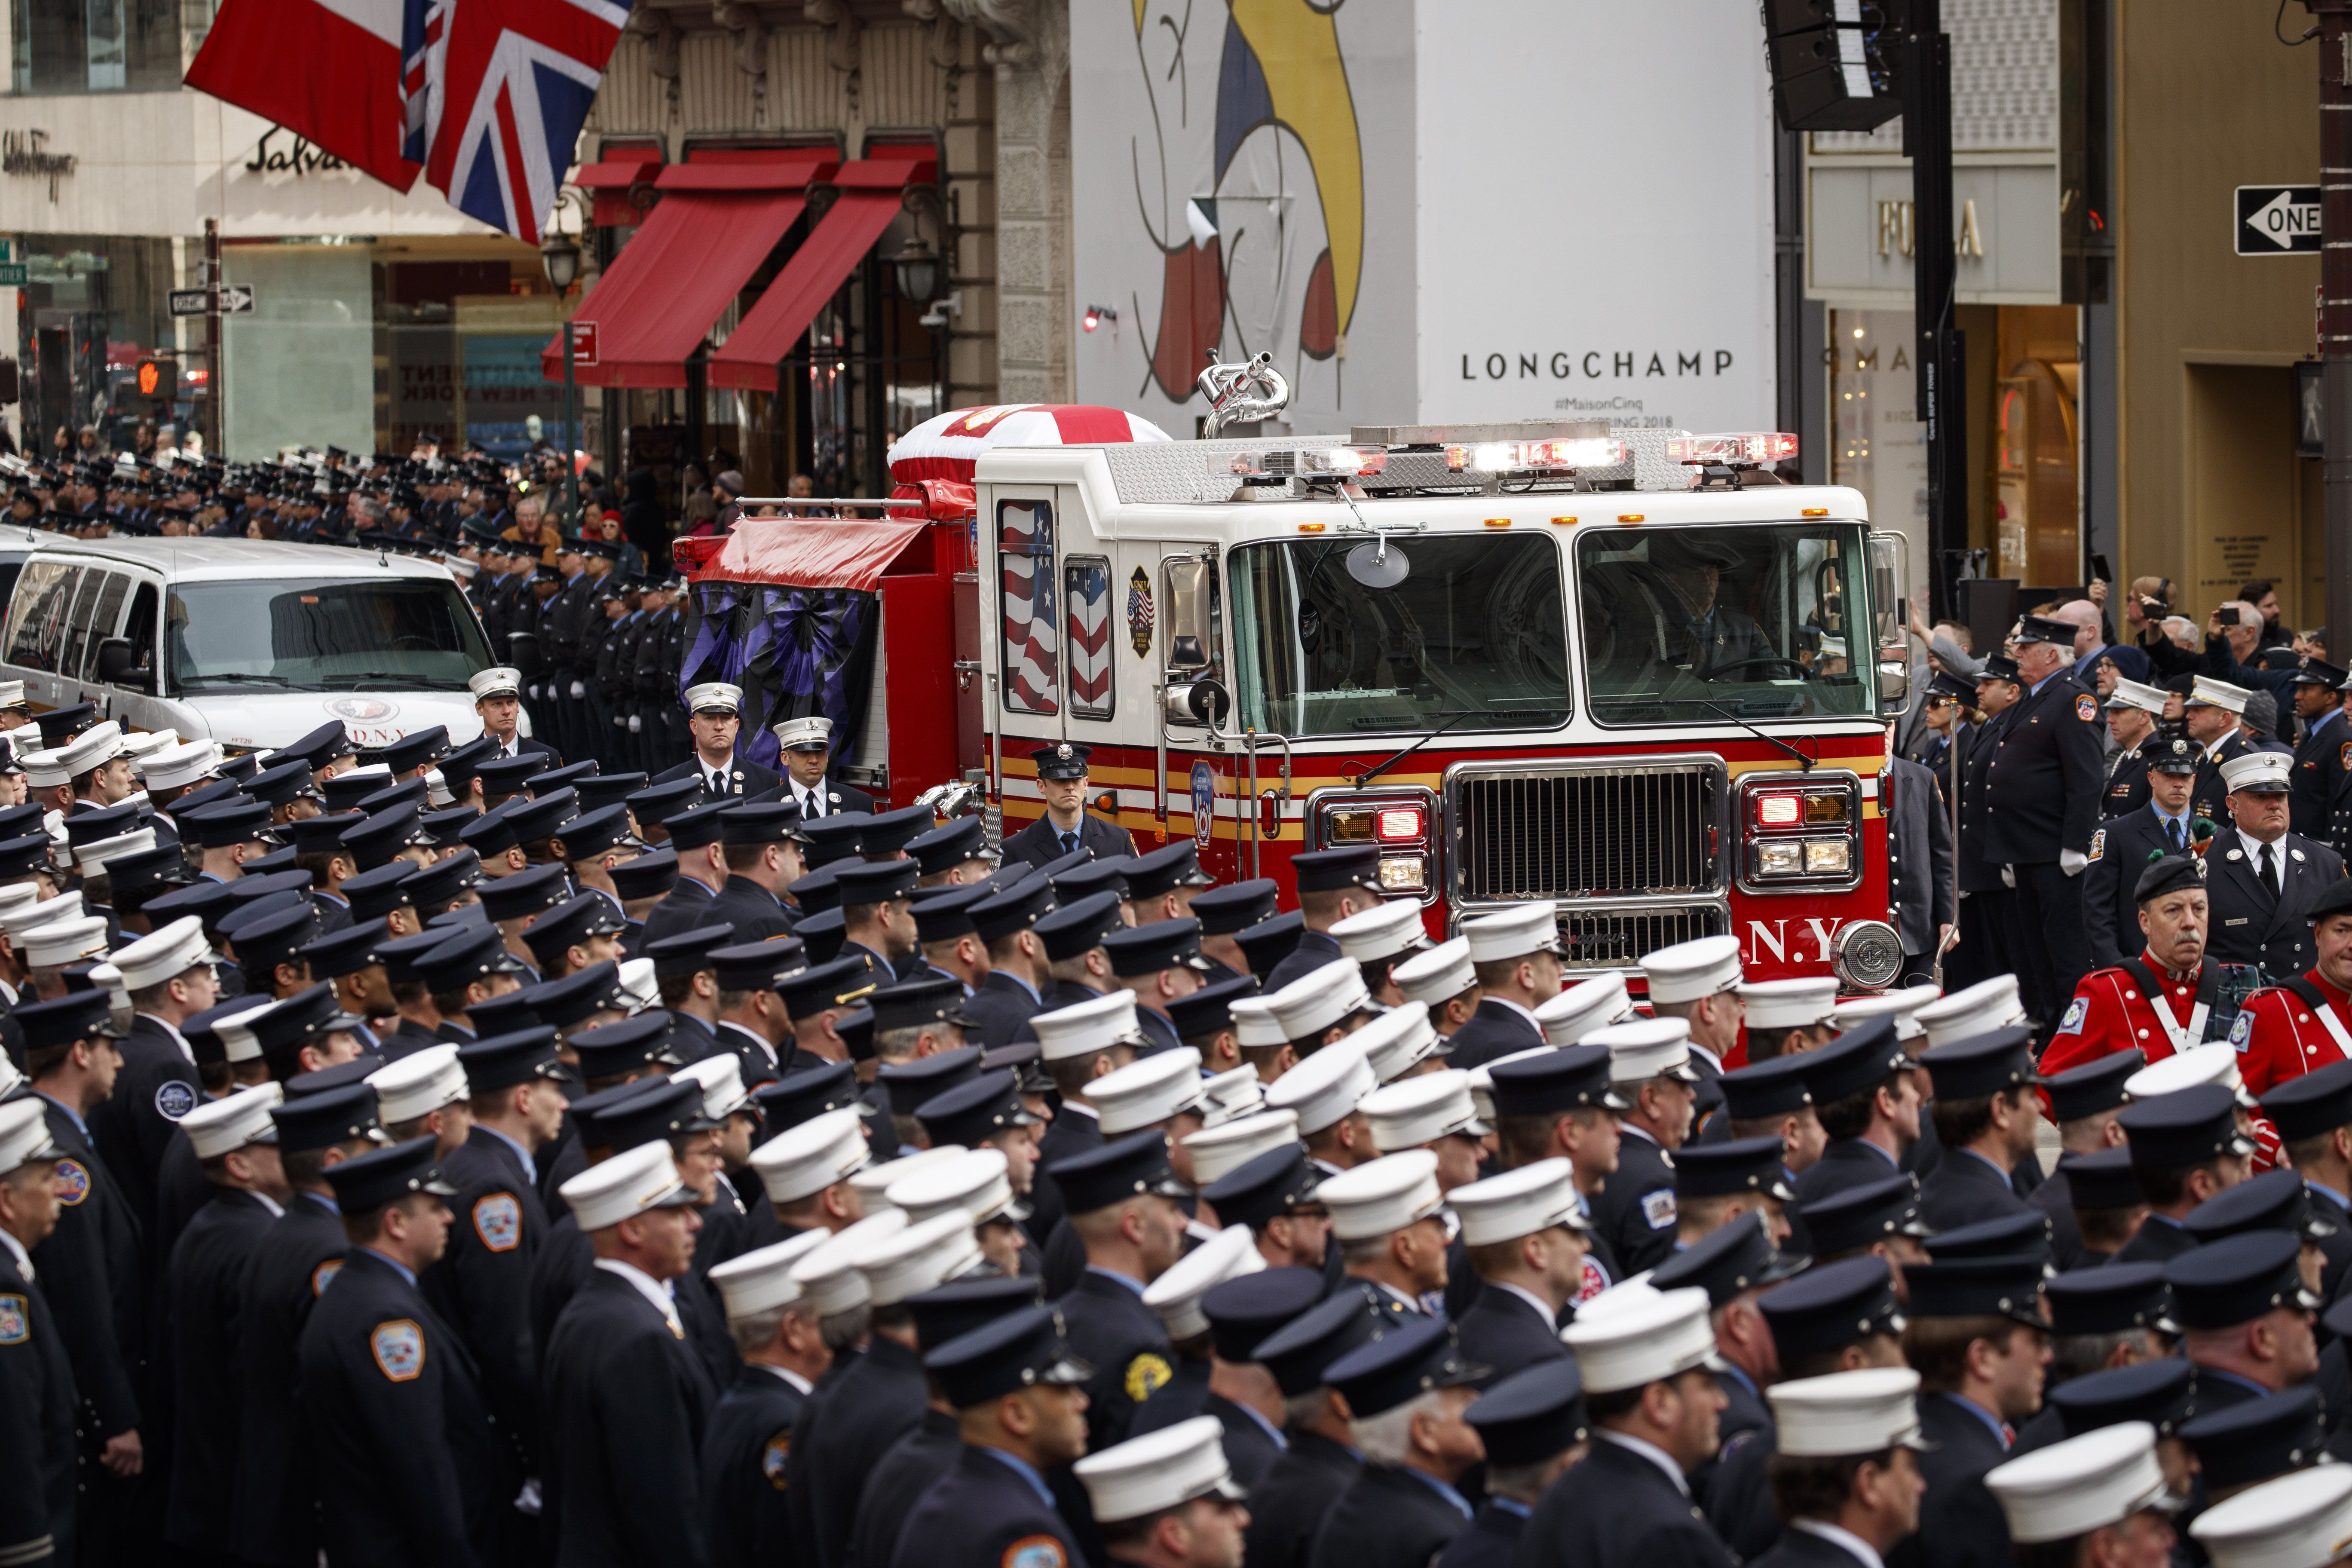 A procession with a fire truck